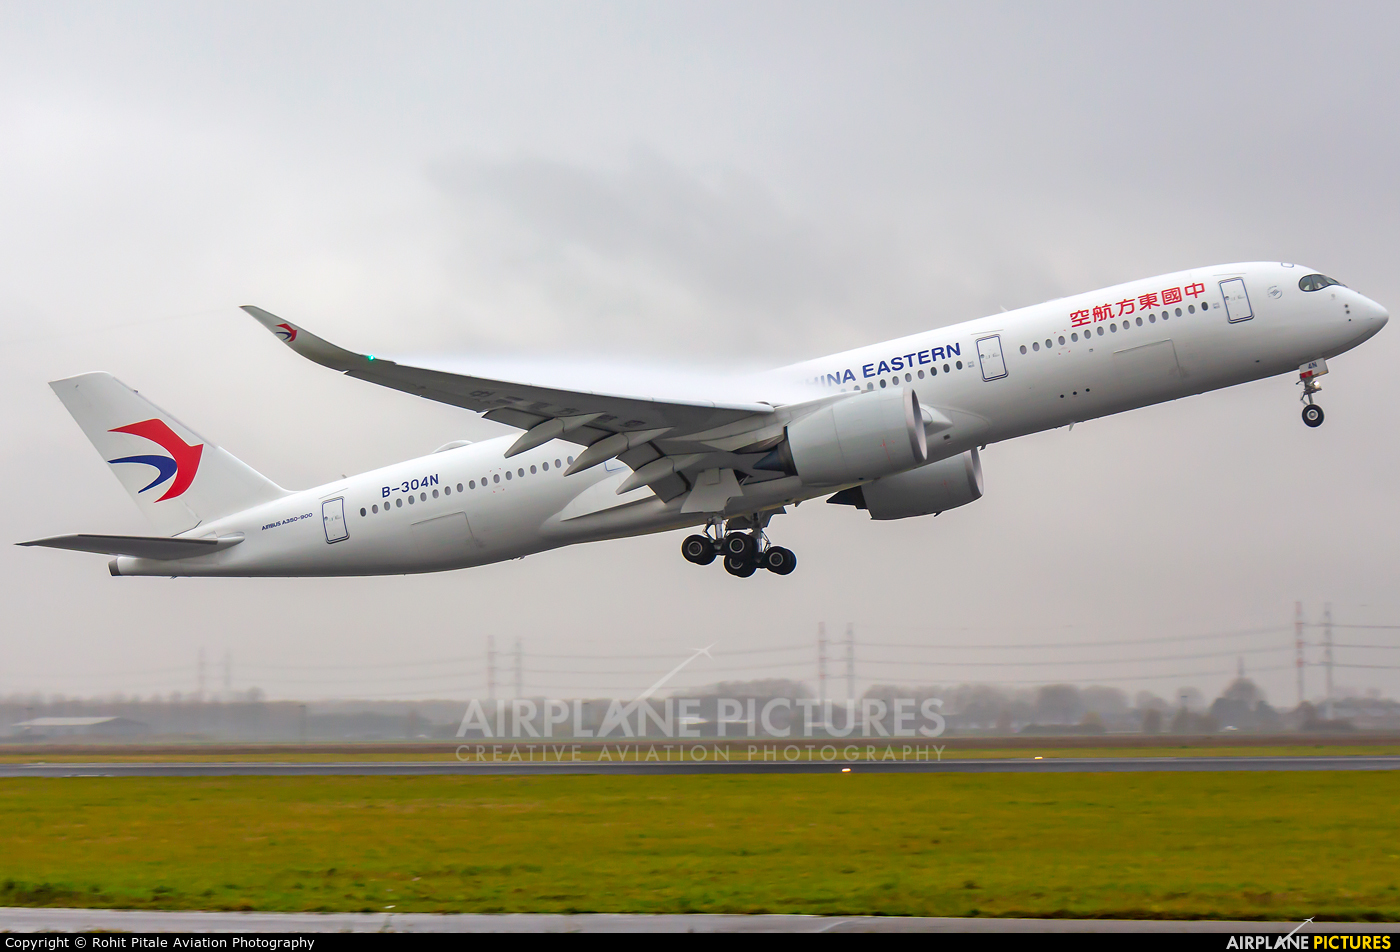 China Eastern Airlines B-304N aircraft at Amsterdam - Schiphol